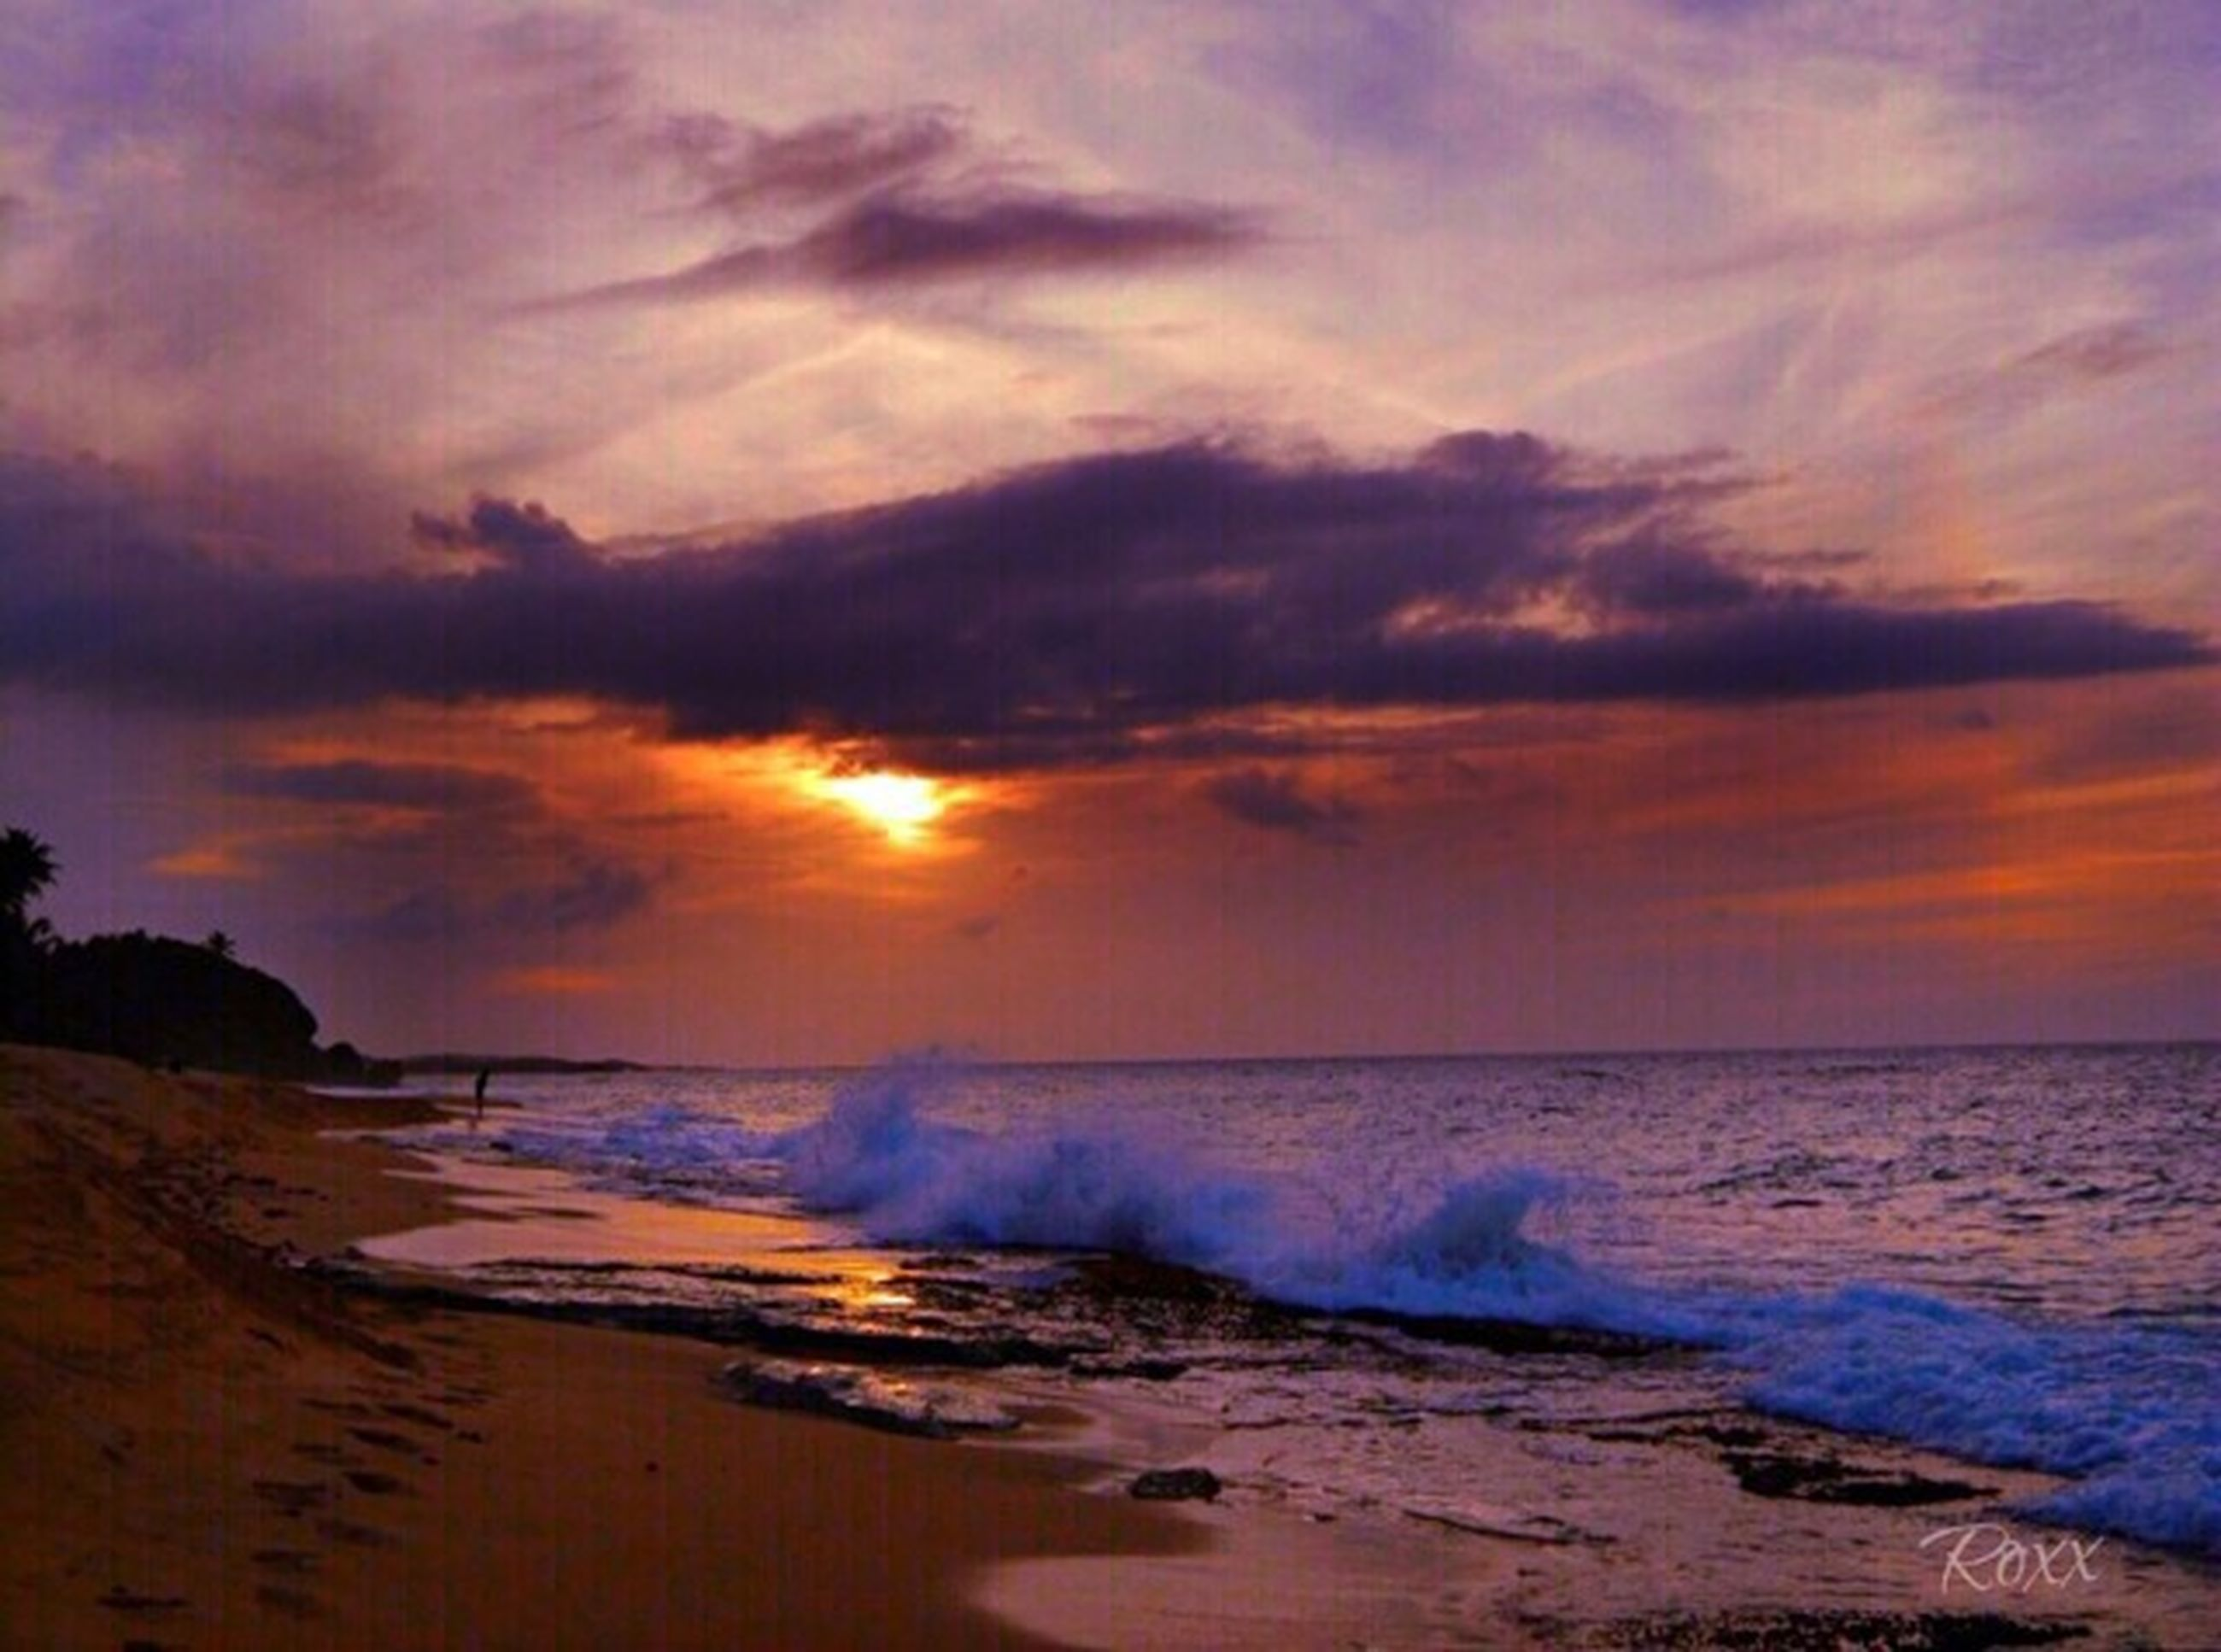 sunset, water, sea, beach, scenics, sky, beauty in nature, tranquil scene, shore, tranquility, cloud - sky, horizon over water, nature, orange color, idyllic, wave, dramatic sky, sand, cloudy, cloud